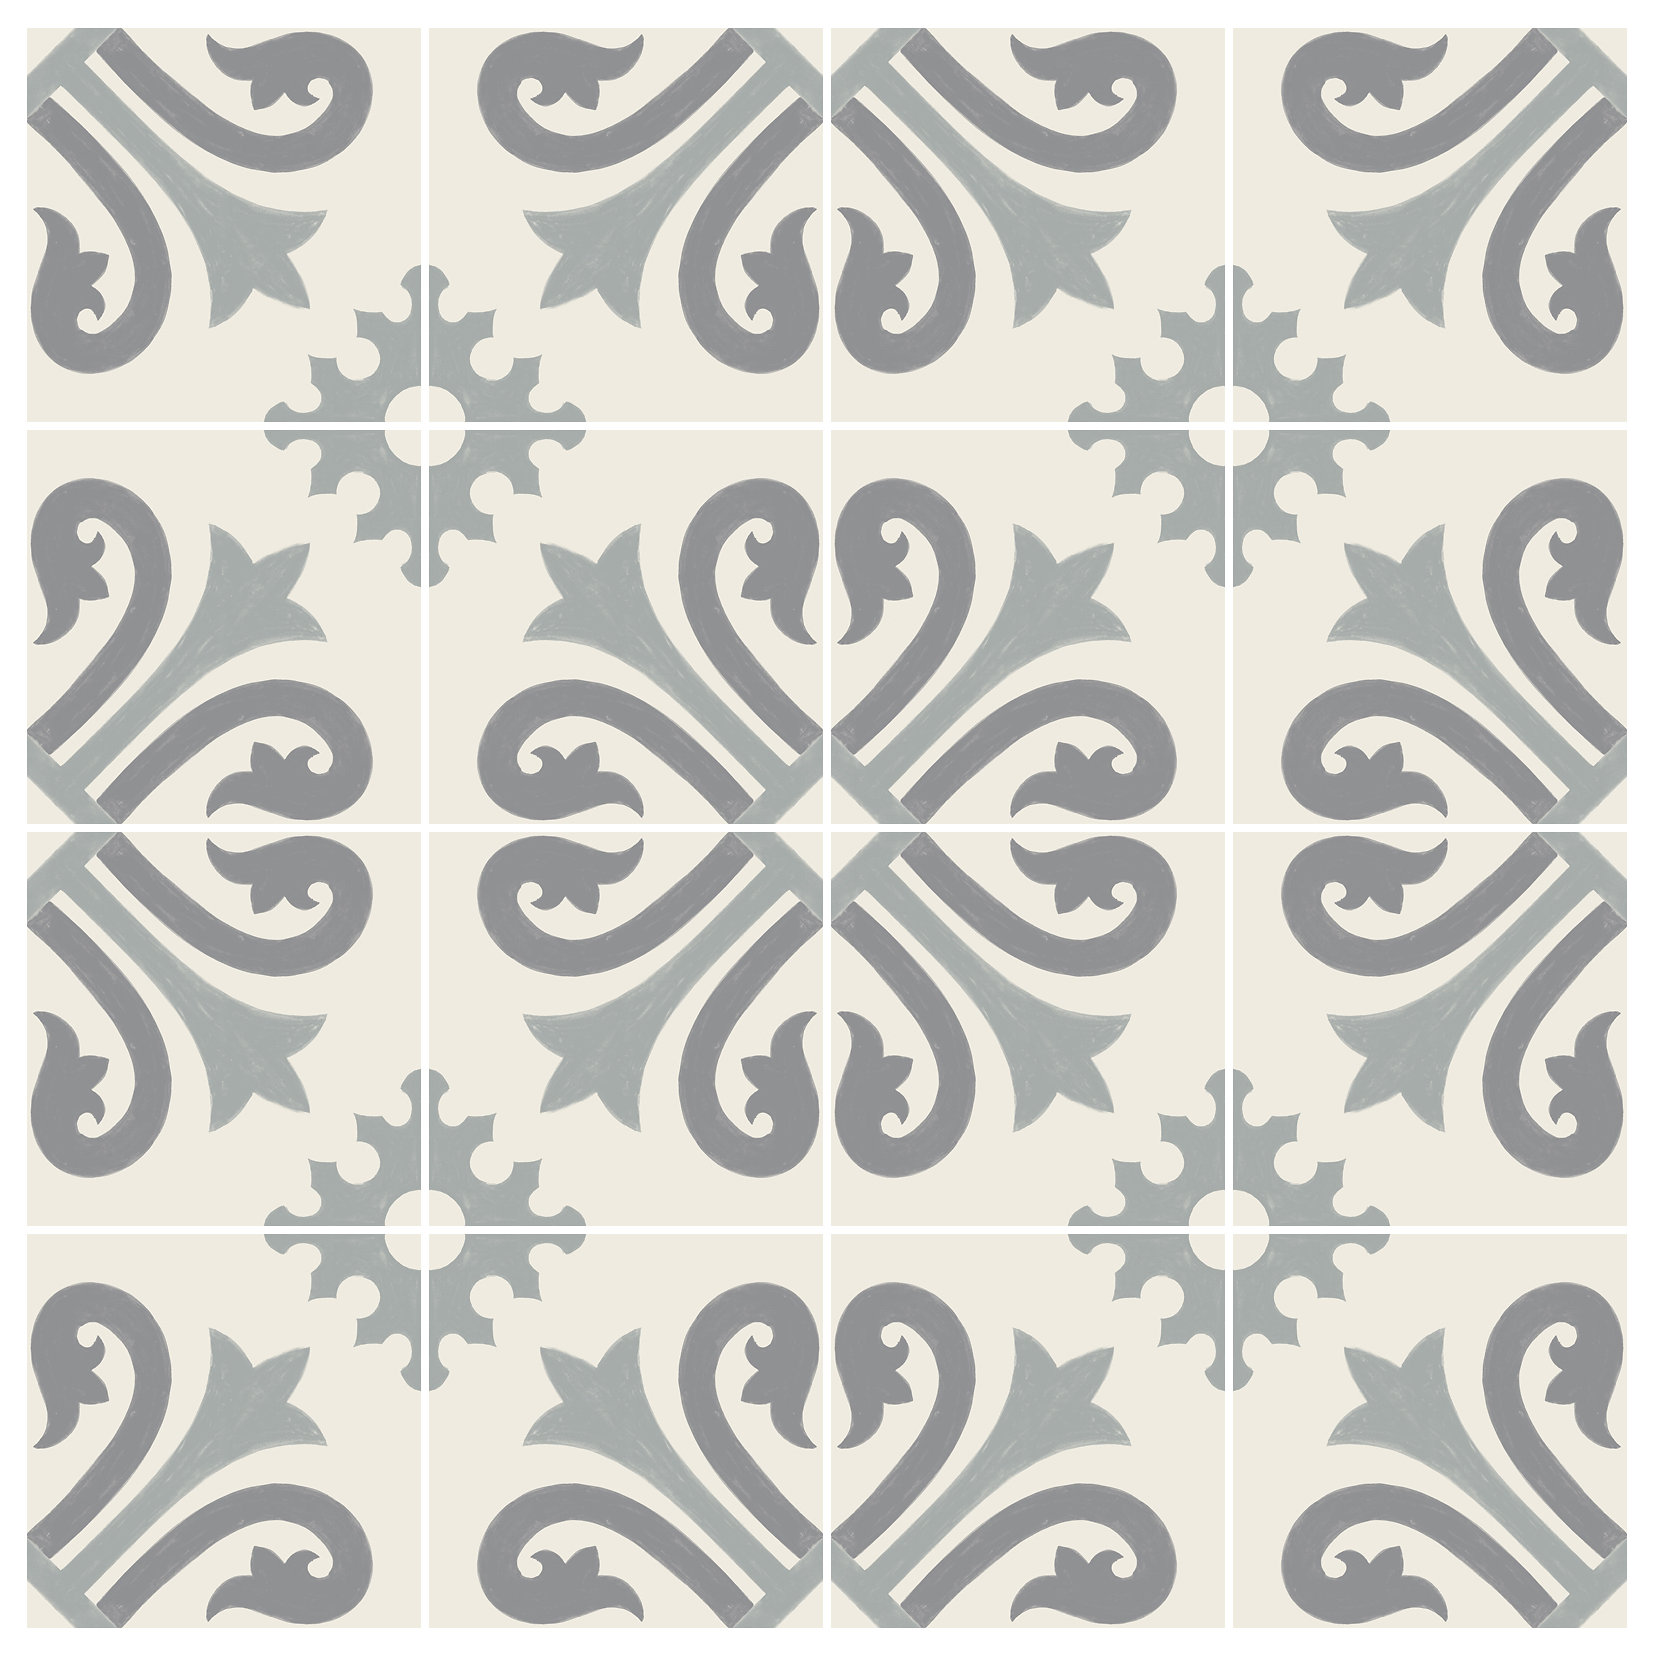 Tile decals quadrostyle vinyl floor tile sticker alhambra quadrostyle offers you a new way to renovate your floors without hiring a tradesman our vinyl floor tile stickers are designed to cover your old floor dailygadgetfo Choice Image